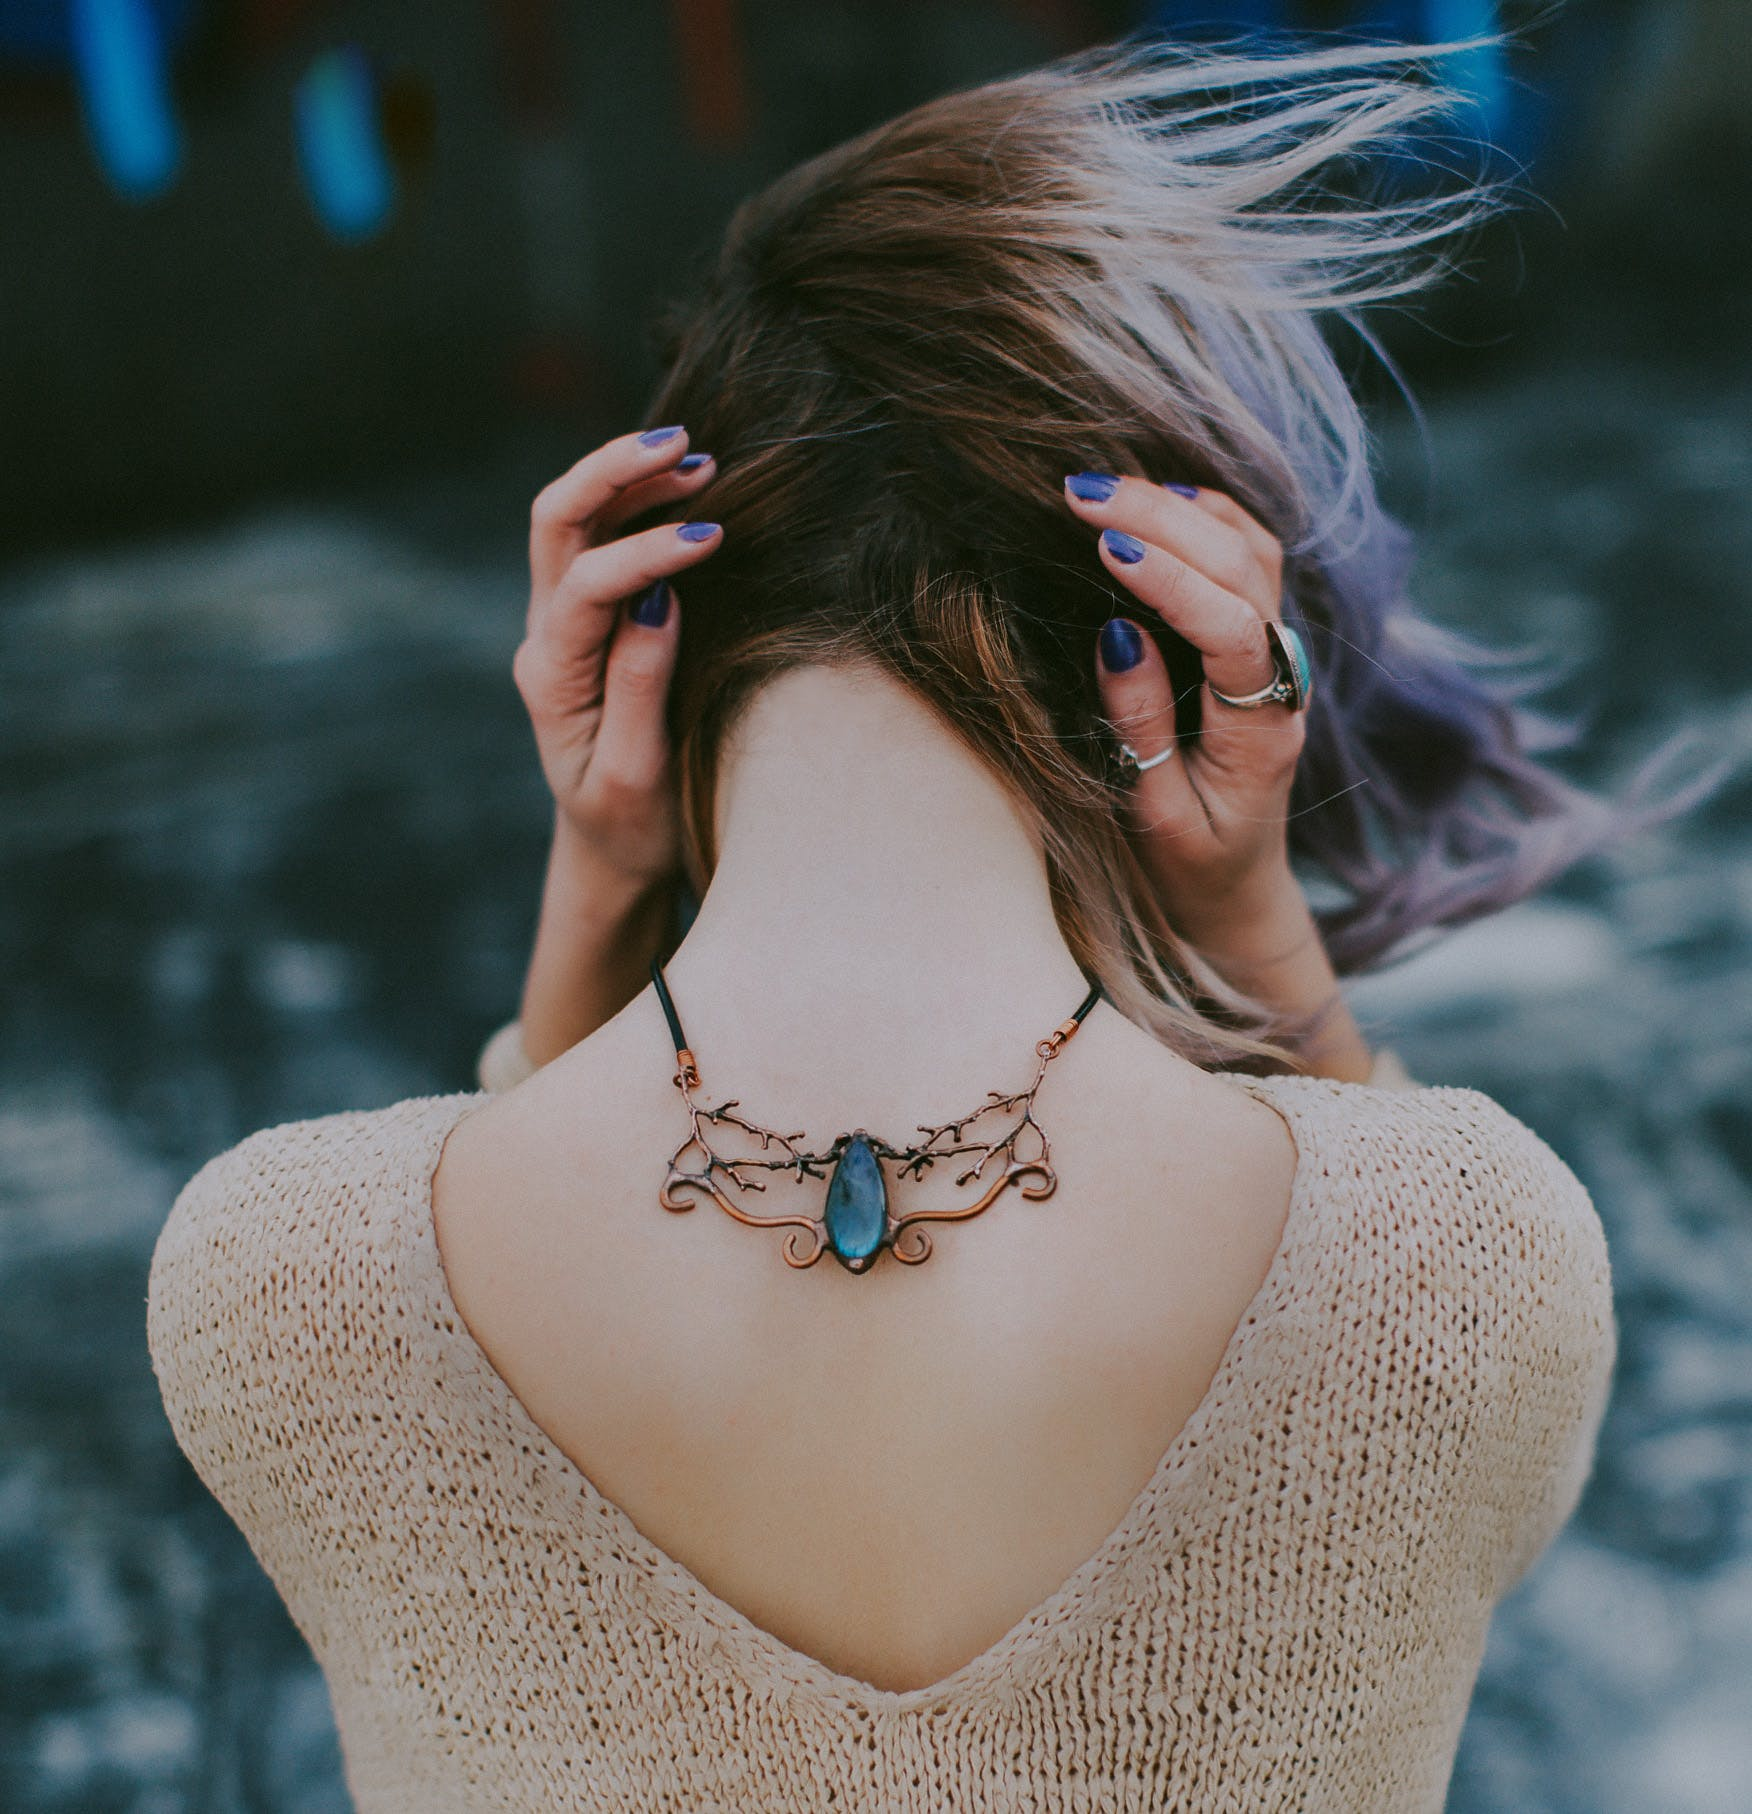 Woman Wears Gold-colored Blue Gemstone Pendant Necklace